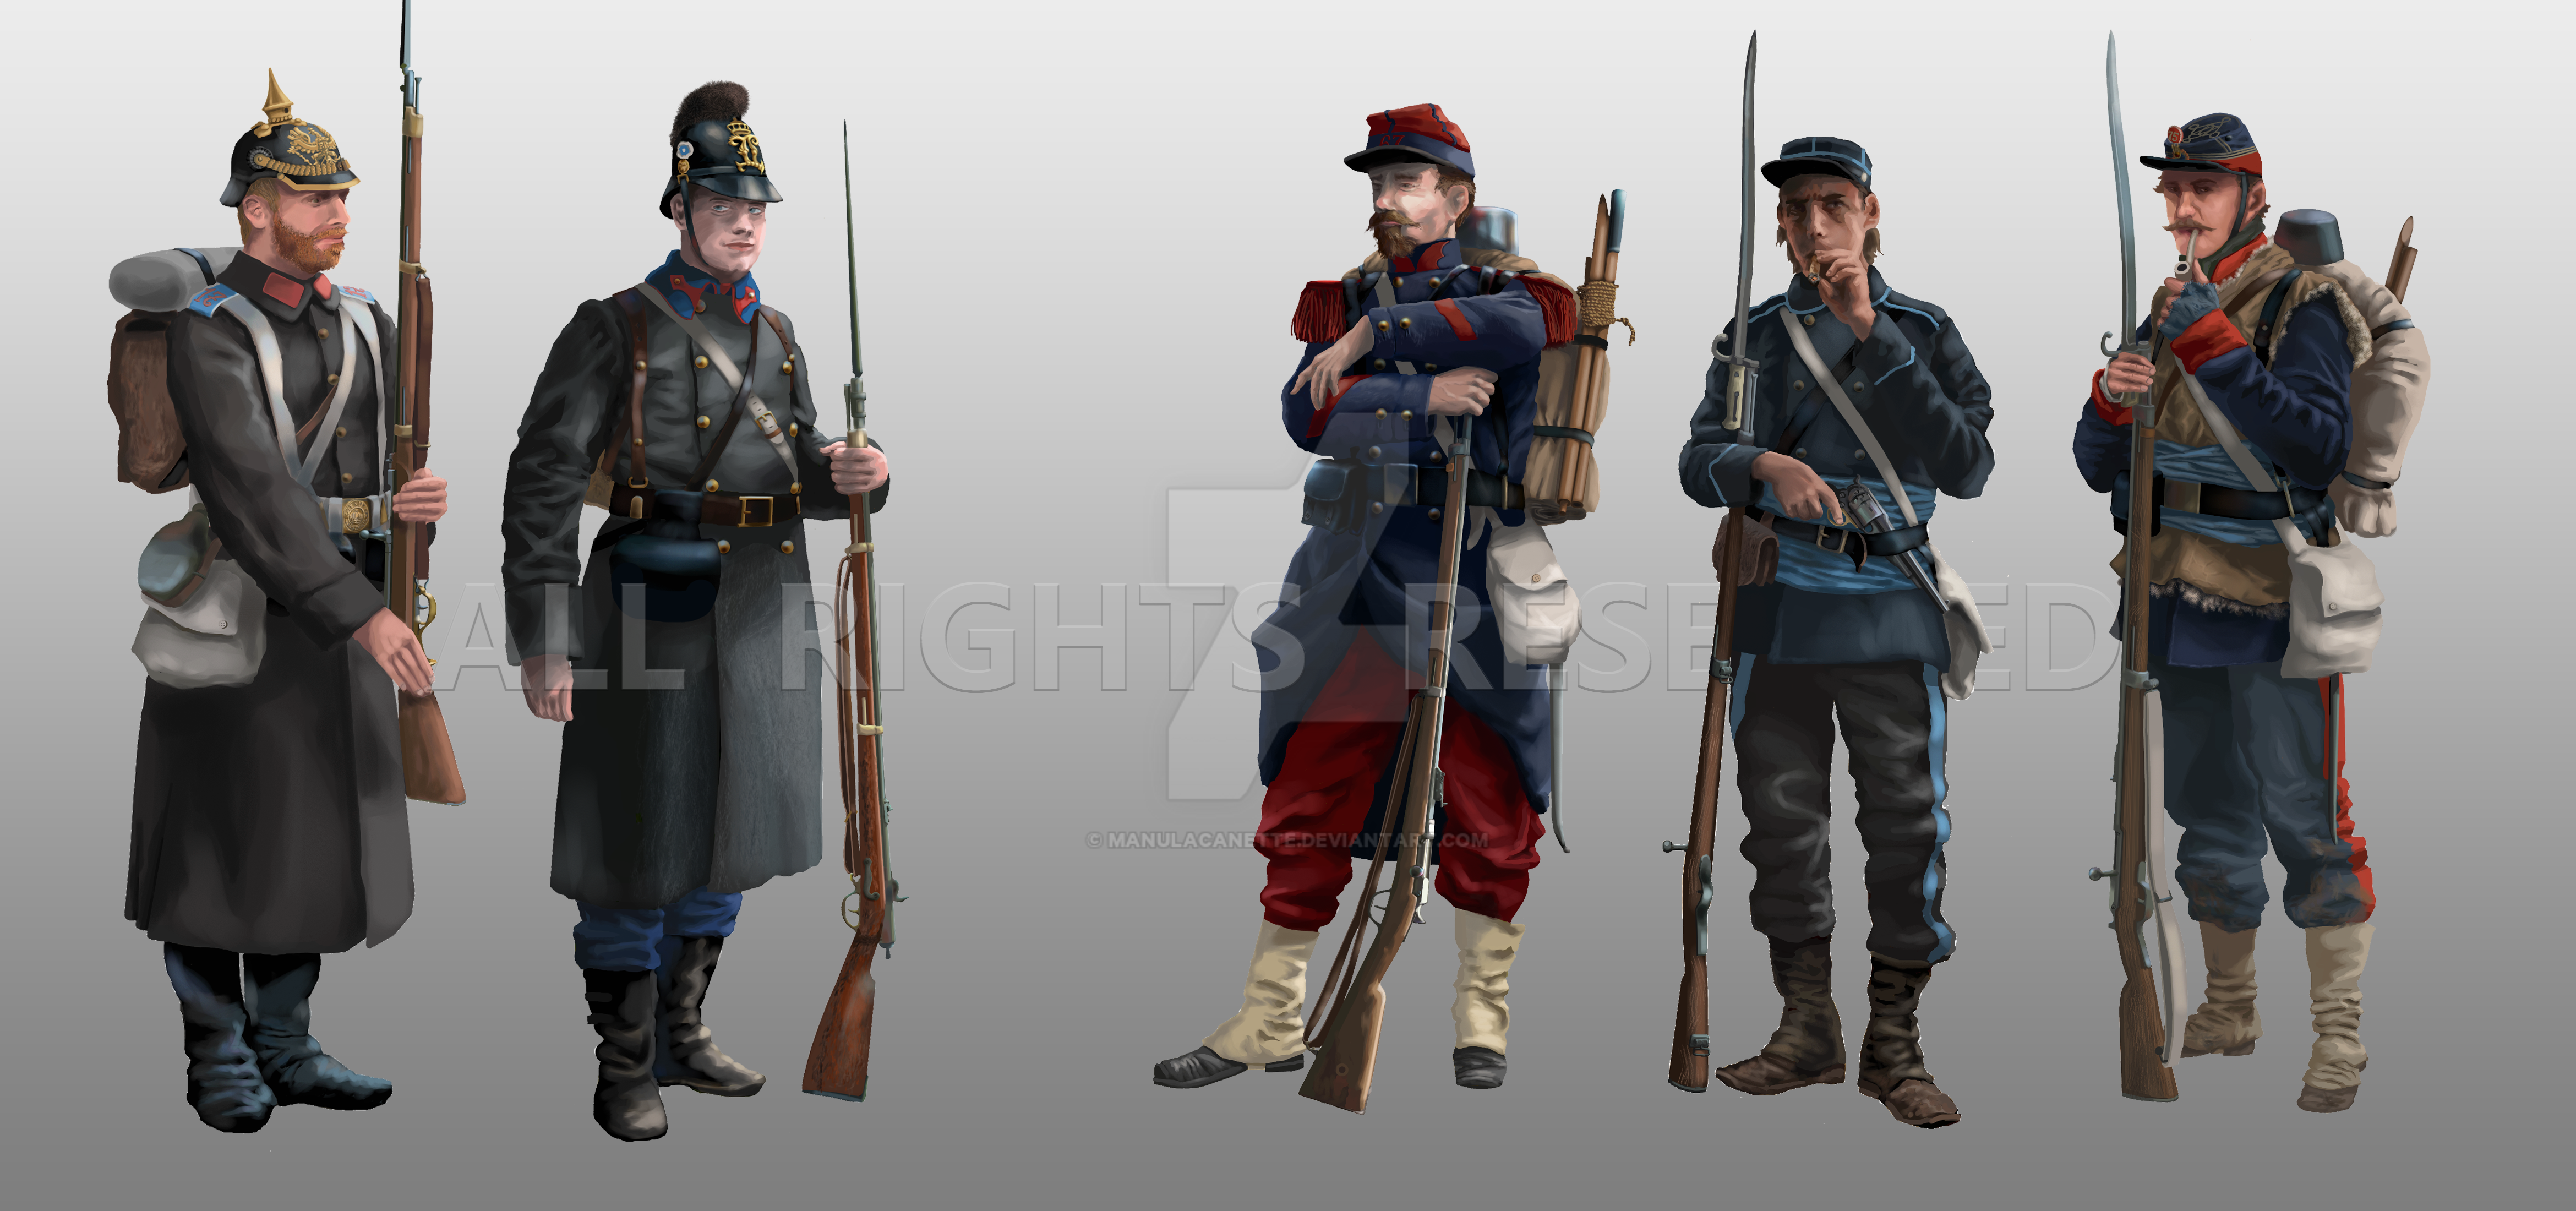 Infantry from the Franco-Prussian War (1870-1871) by ManuLaCanette